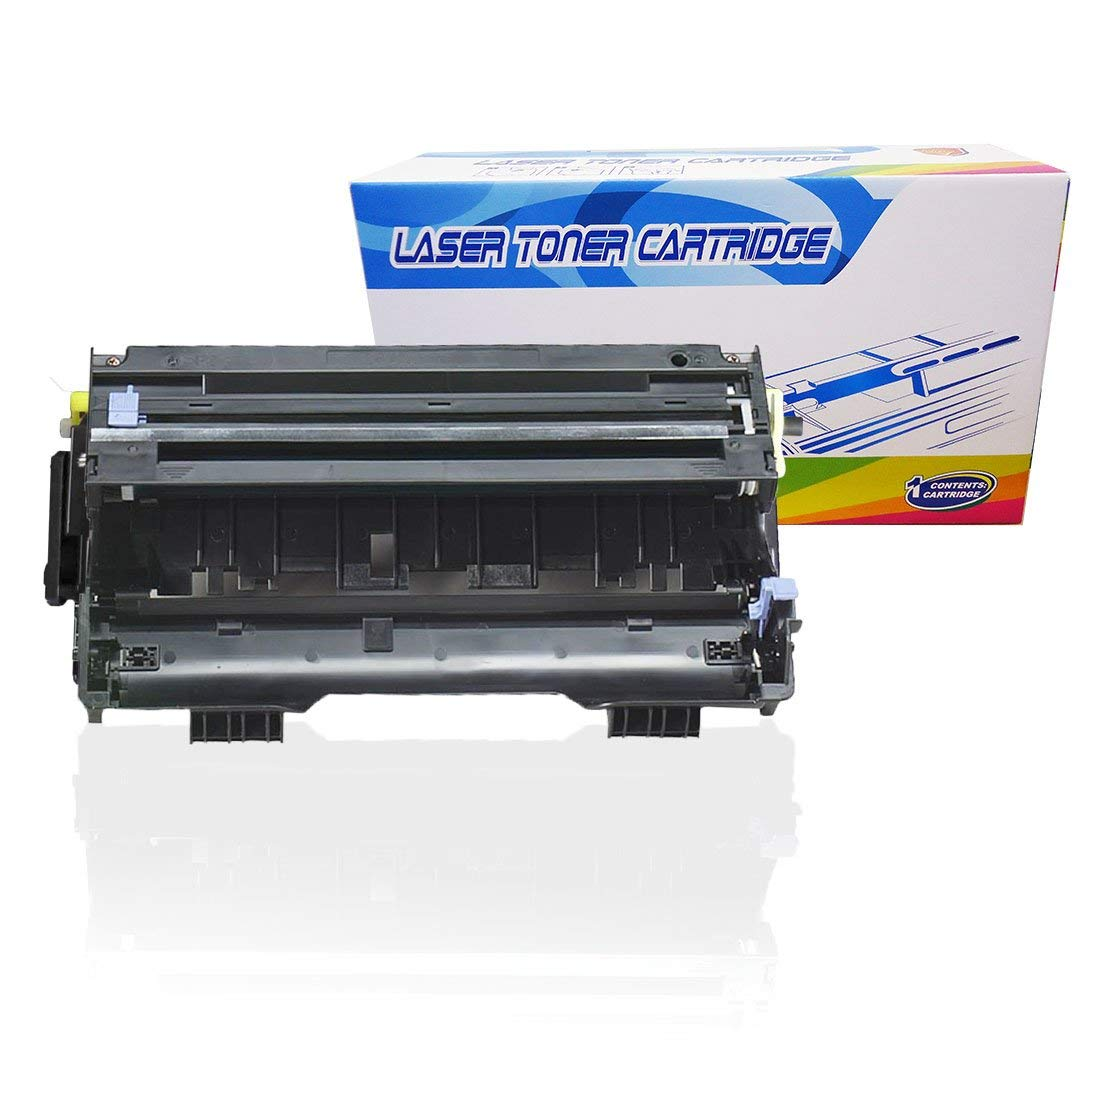 BROTHER MFC-8840D PRINTER USB DRIVERS FOR WINDOWS